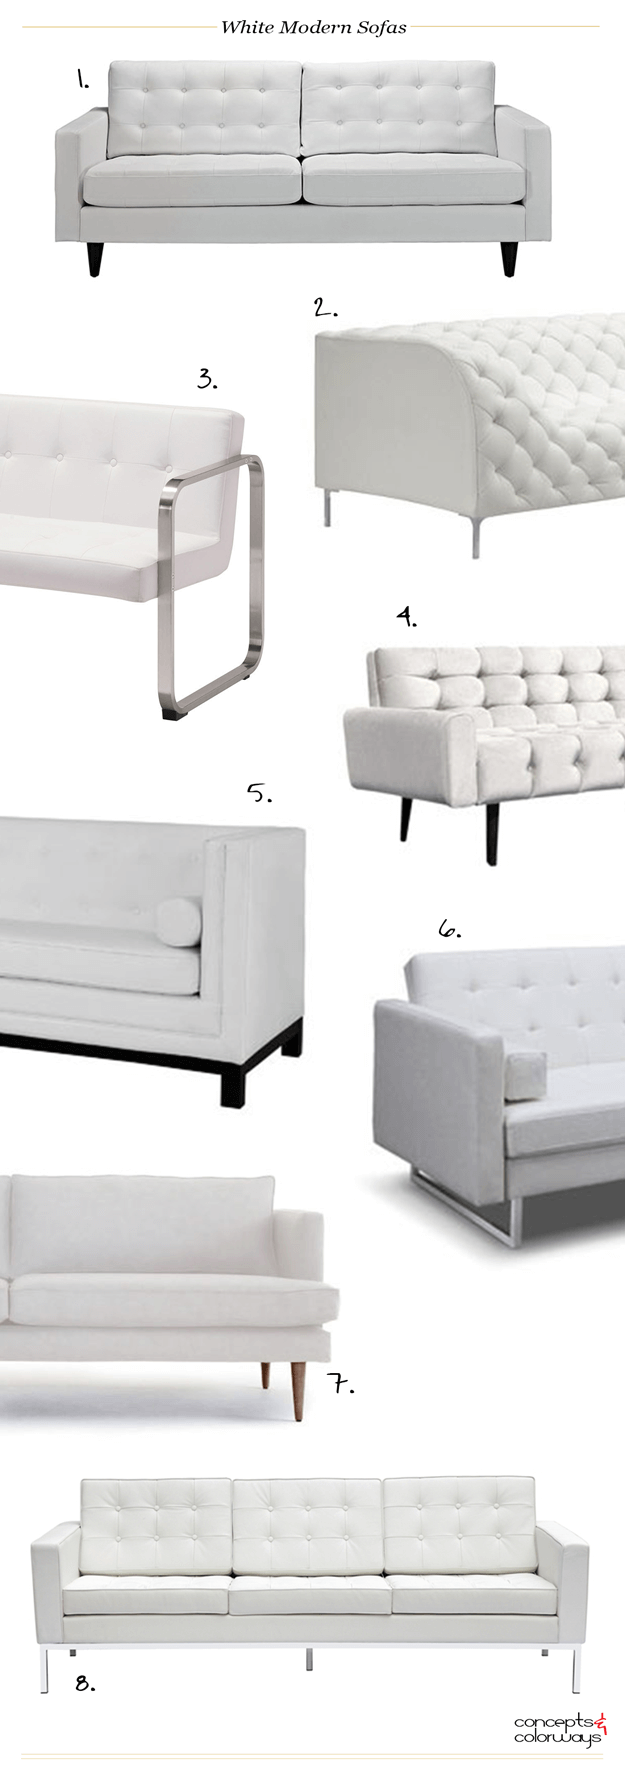 WHITE MODERN SOFAS - Concepts and Colorways